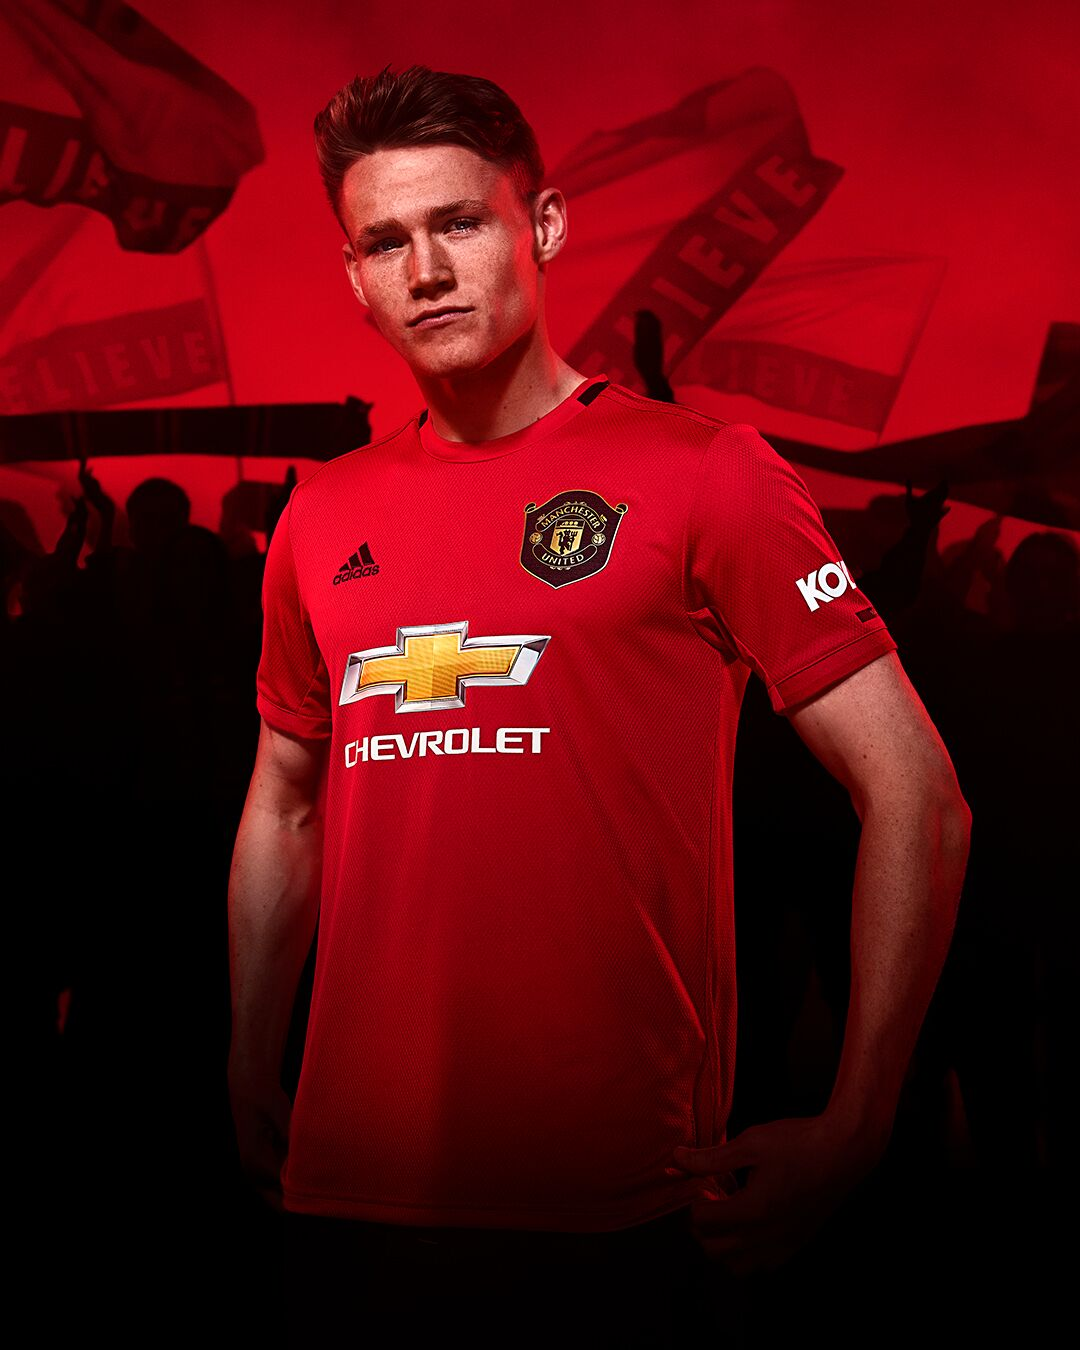 new manchester united 19 20 home shirt celebrating treble anniversary revealed joe co uk new manchester united 19 20 home shirt